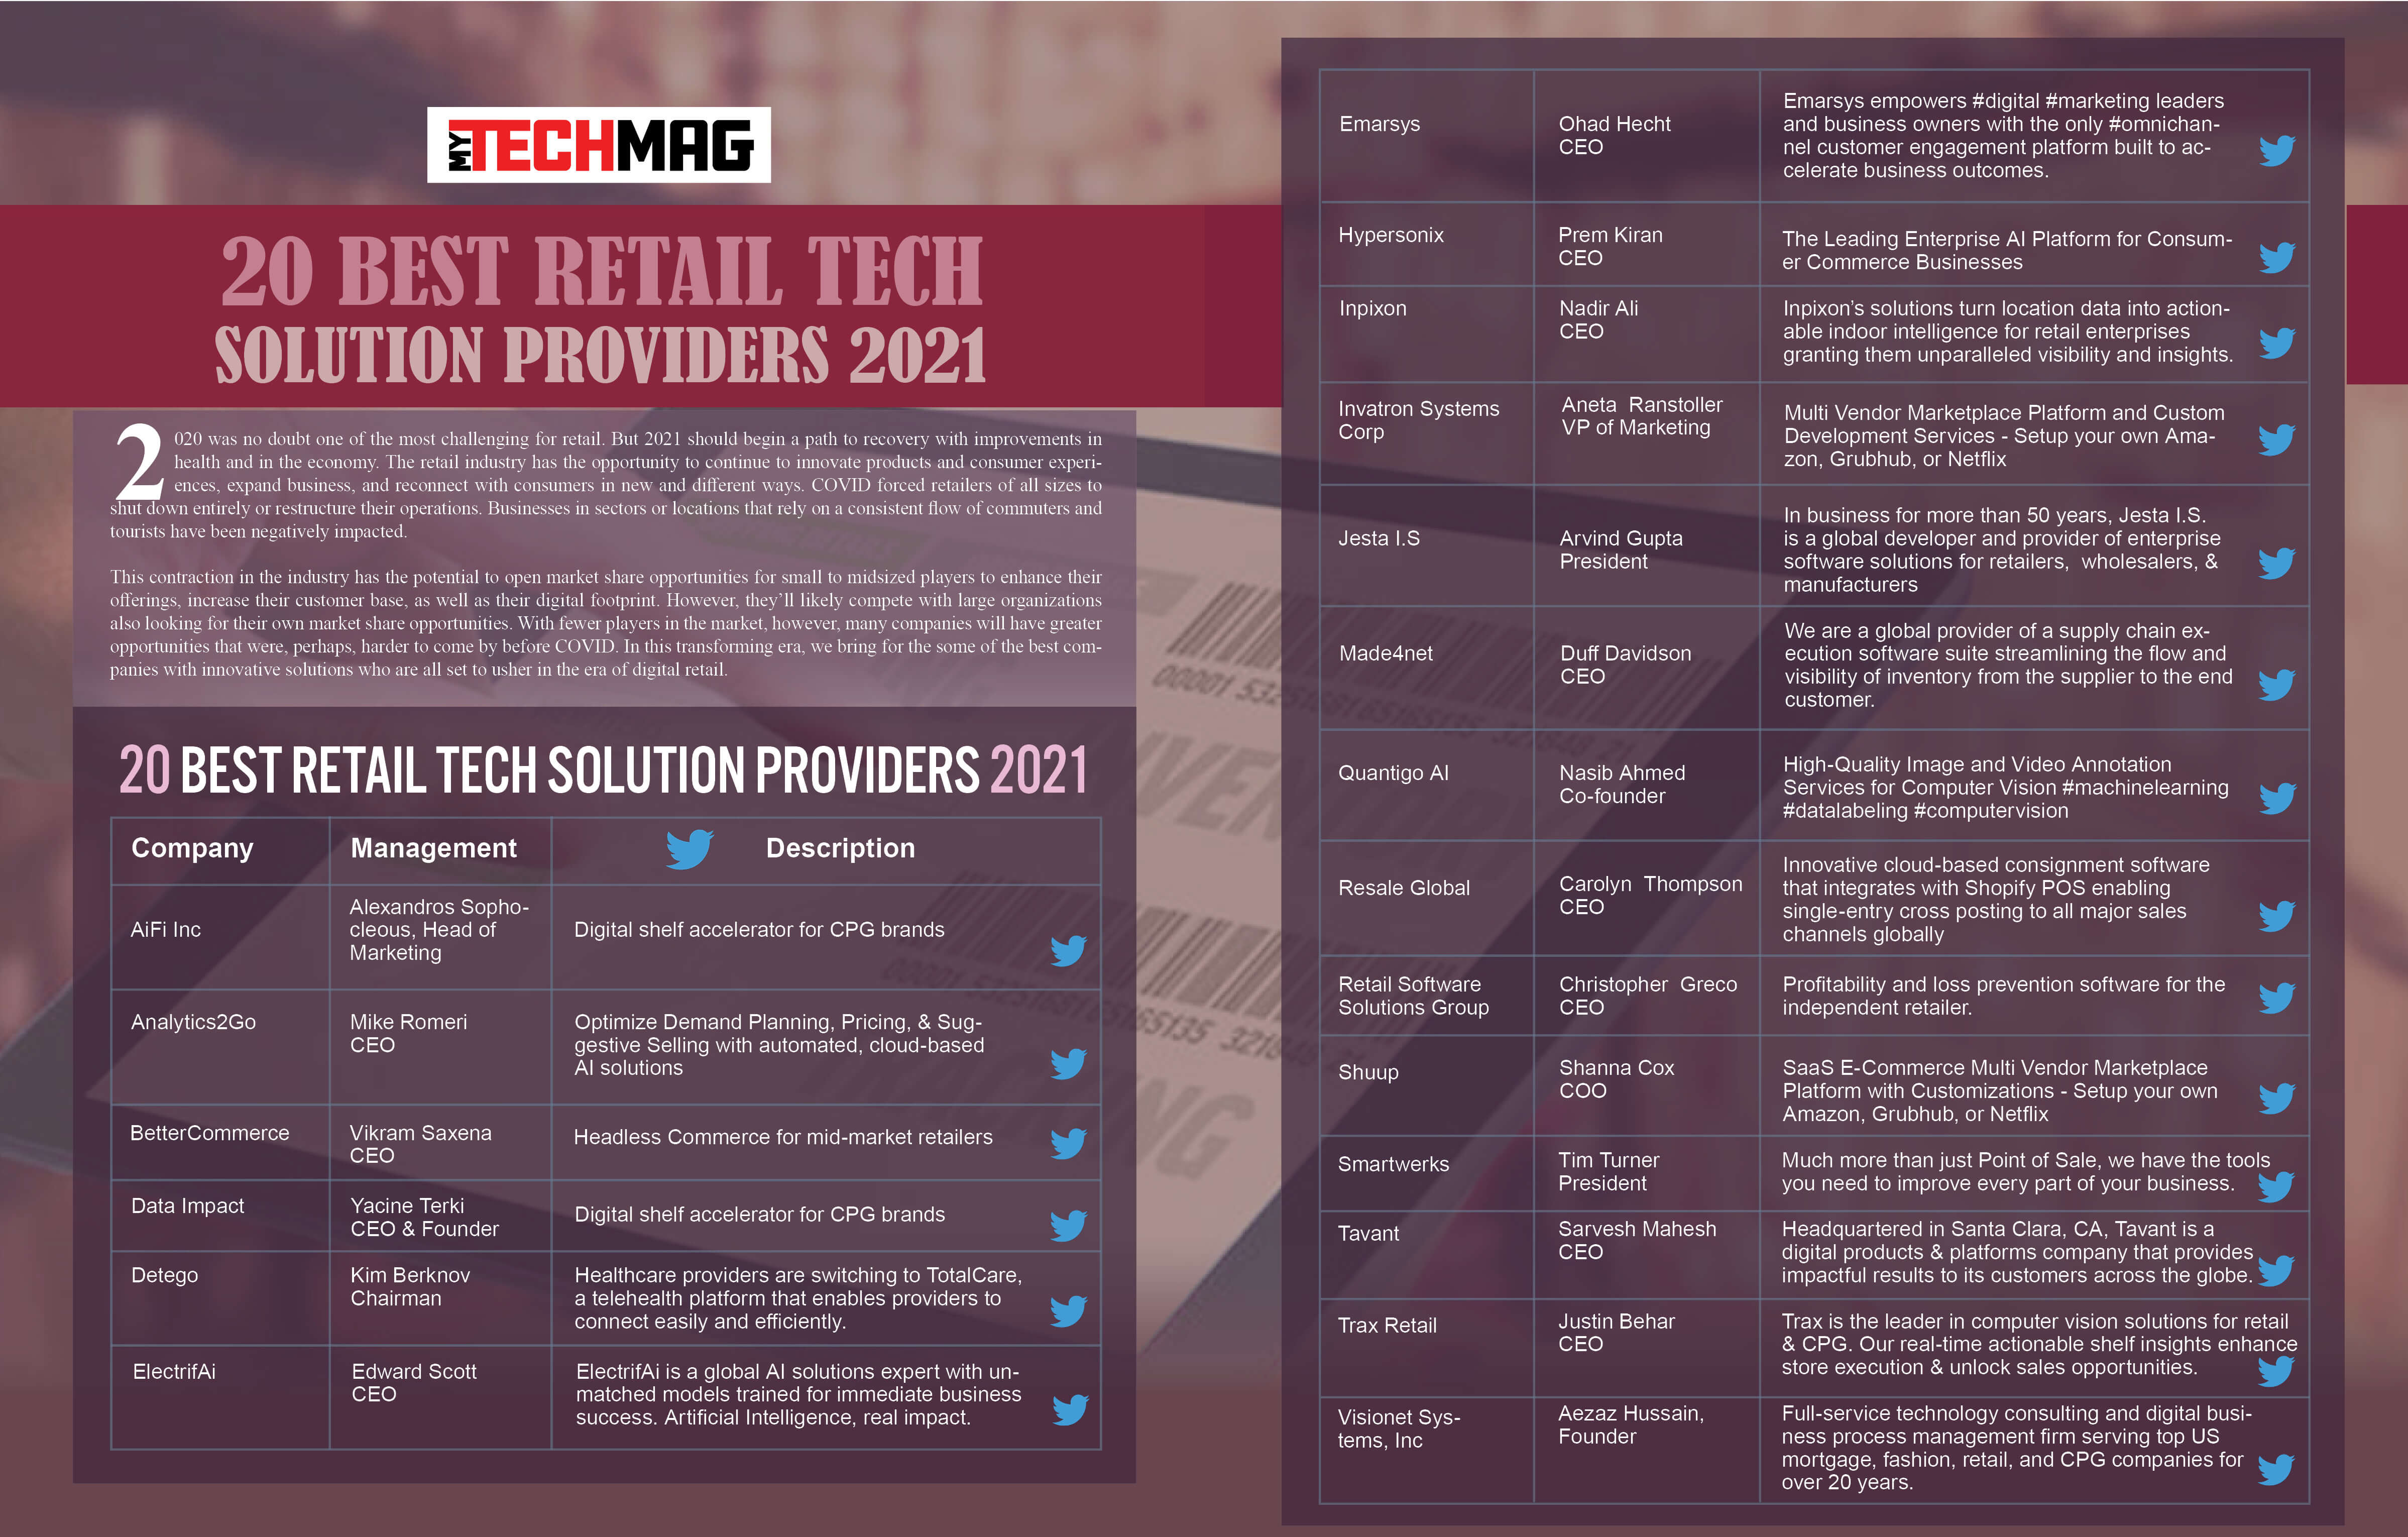 Top 20 Retail Tech Solution Providers 2021